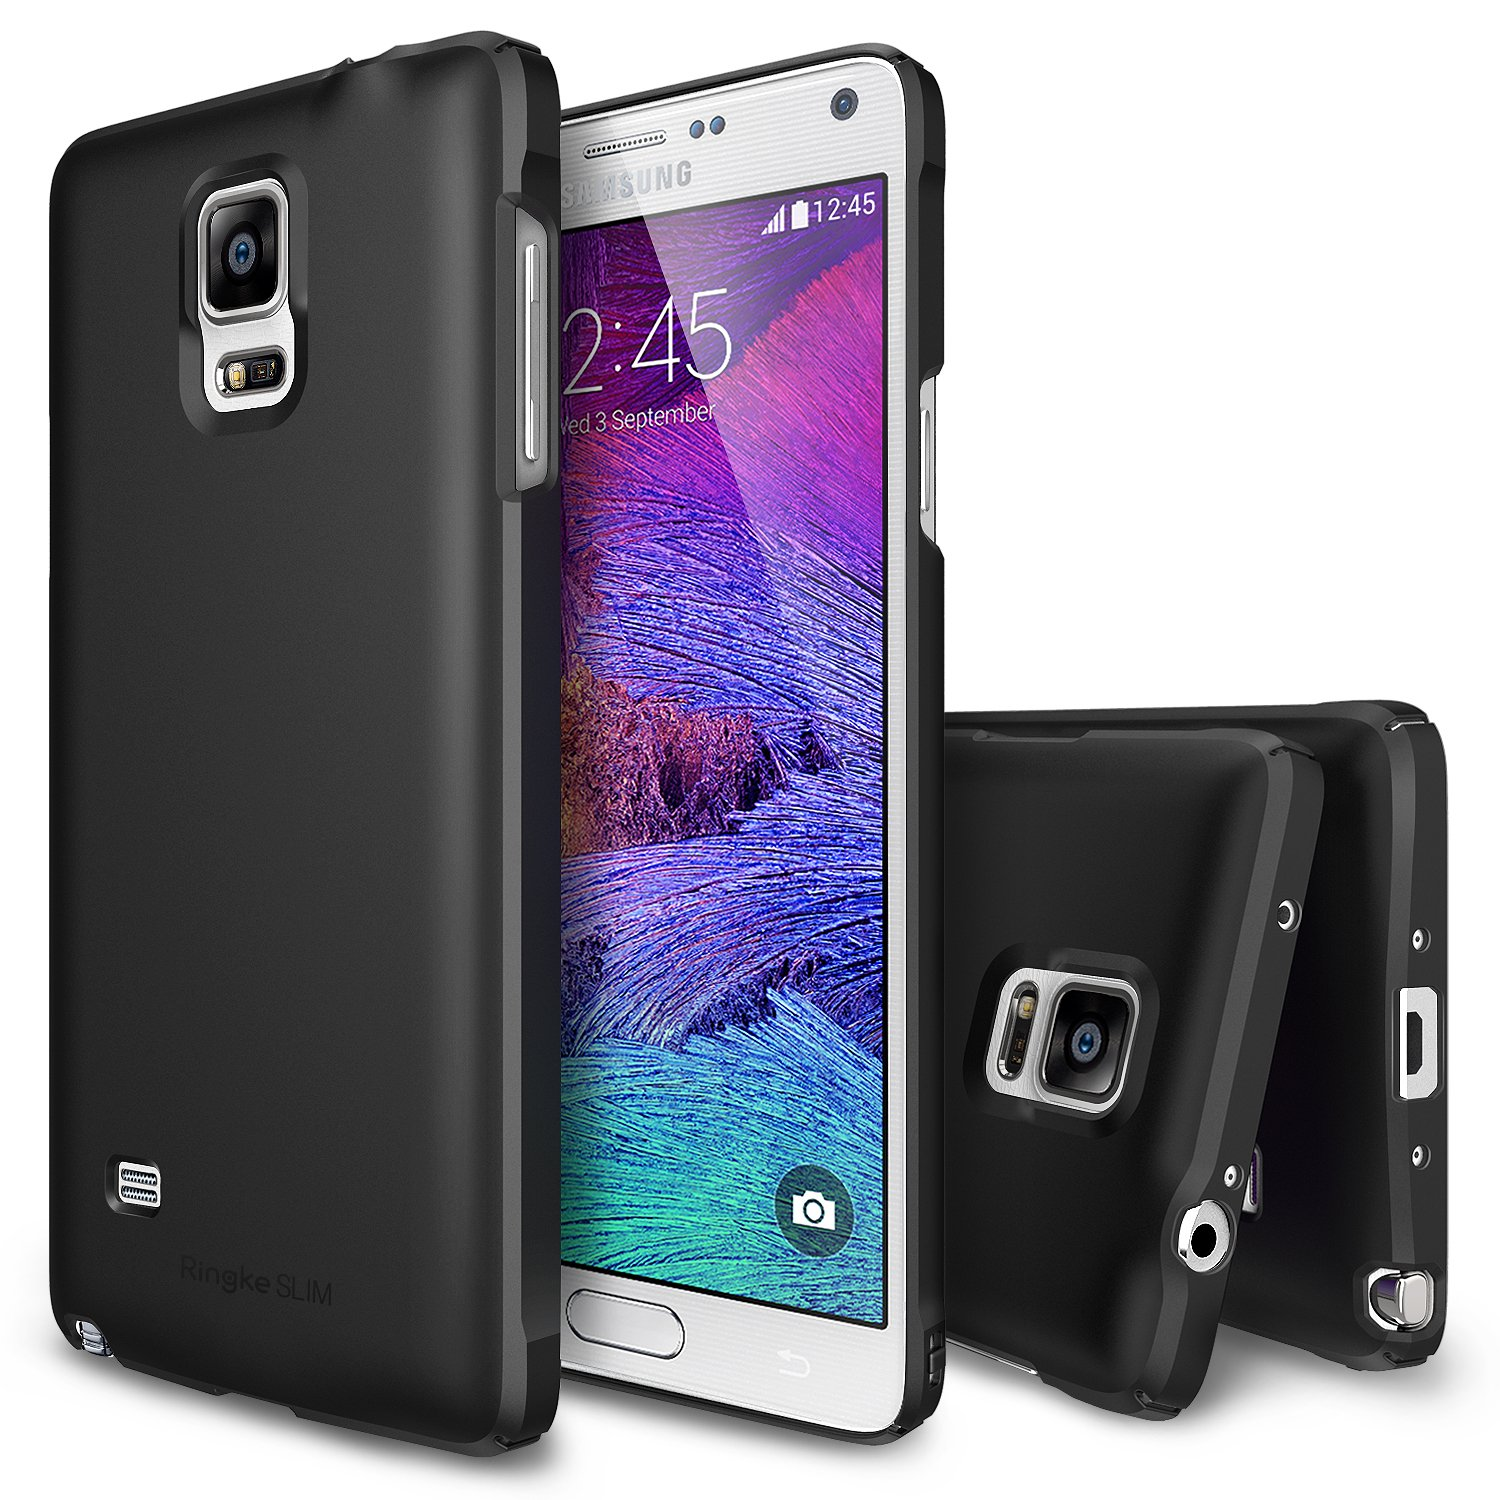 slimmest cases available samsung galaxy note 4. Black Bedroom Furniture Sets. Home Design Ideas